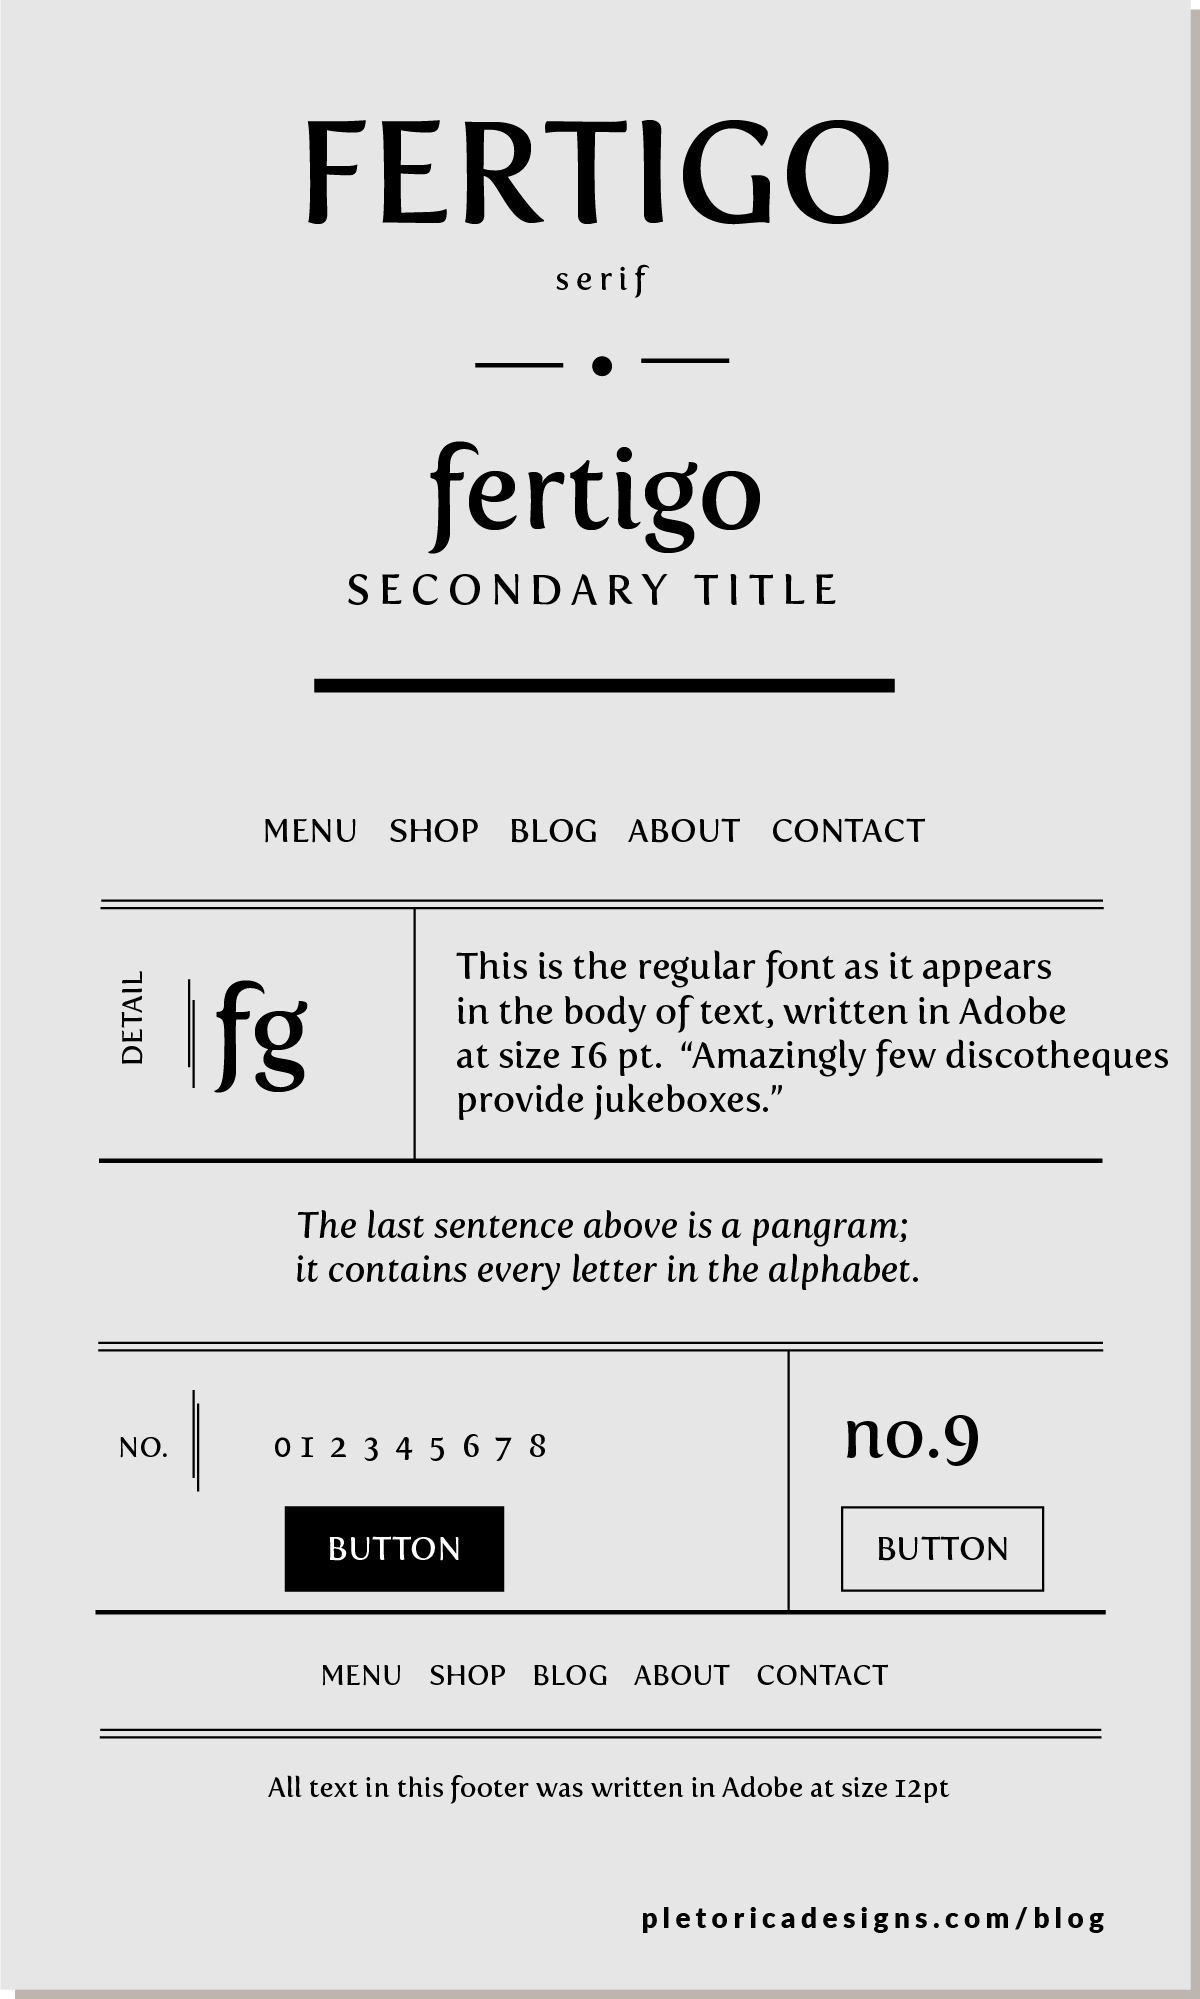 LET'S TYPE: Fertigo — PLETÓRICA DESIGNS